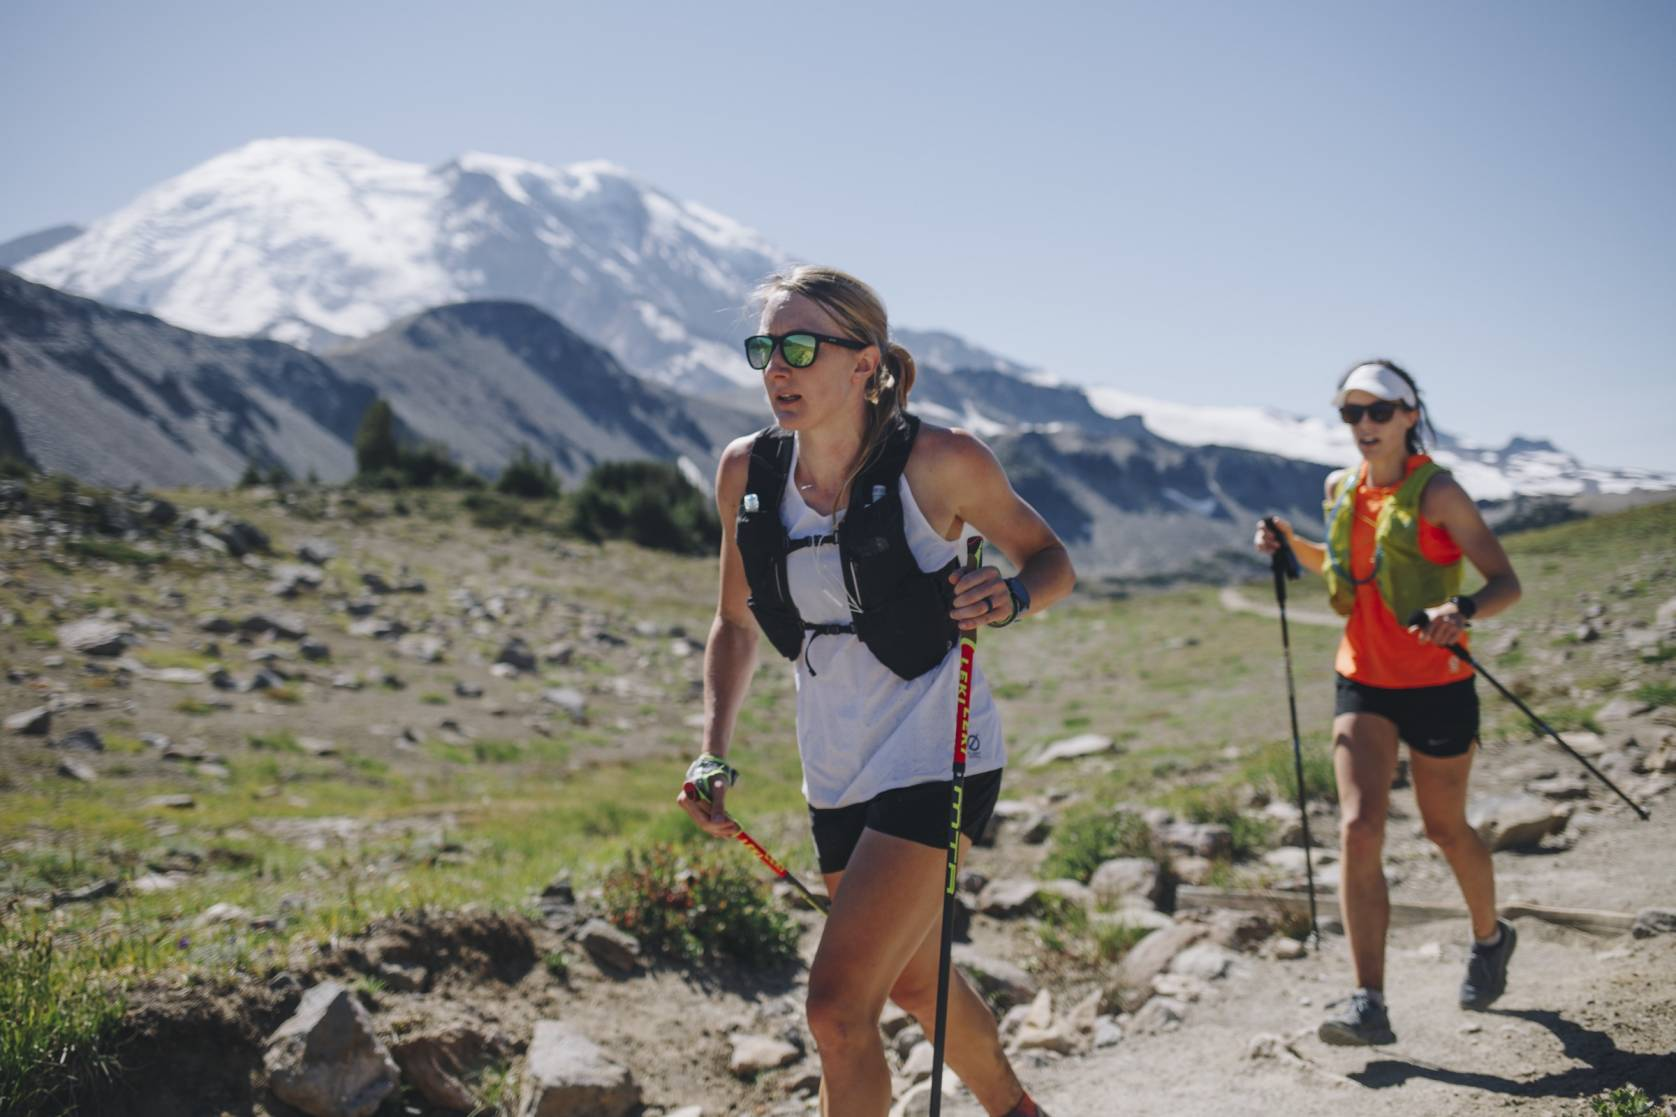 Kaytlyn Gerbin followed by another runner as she aims for FKT on the Wonderland Trail